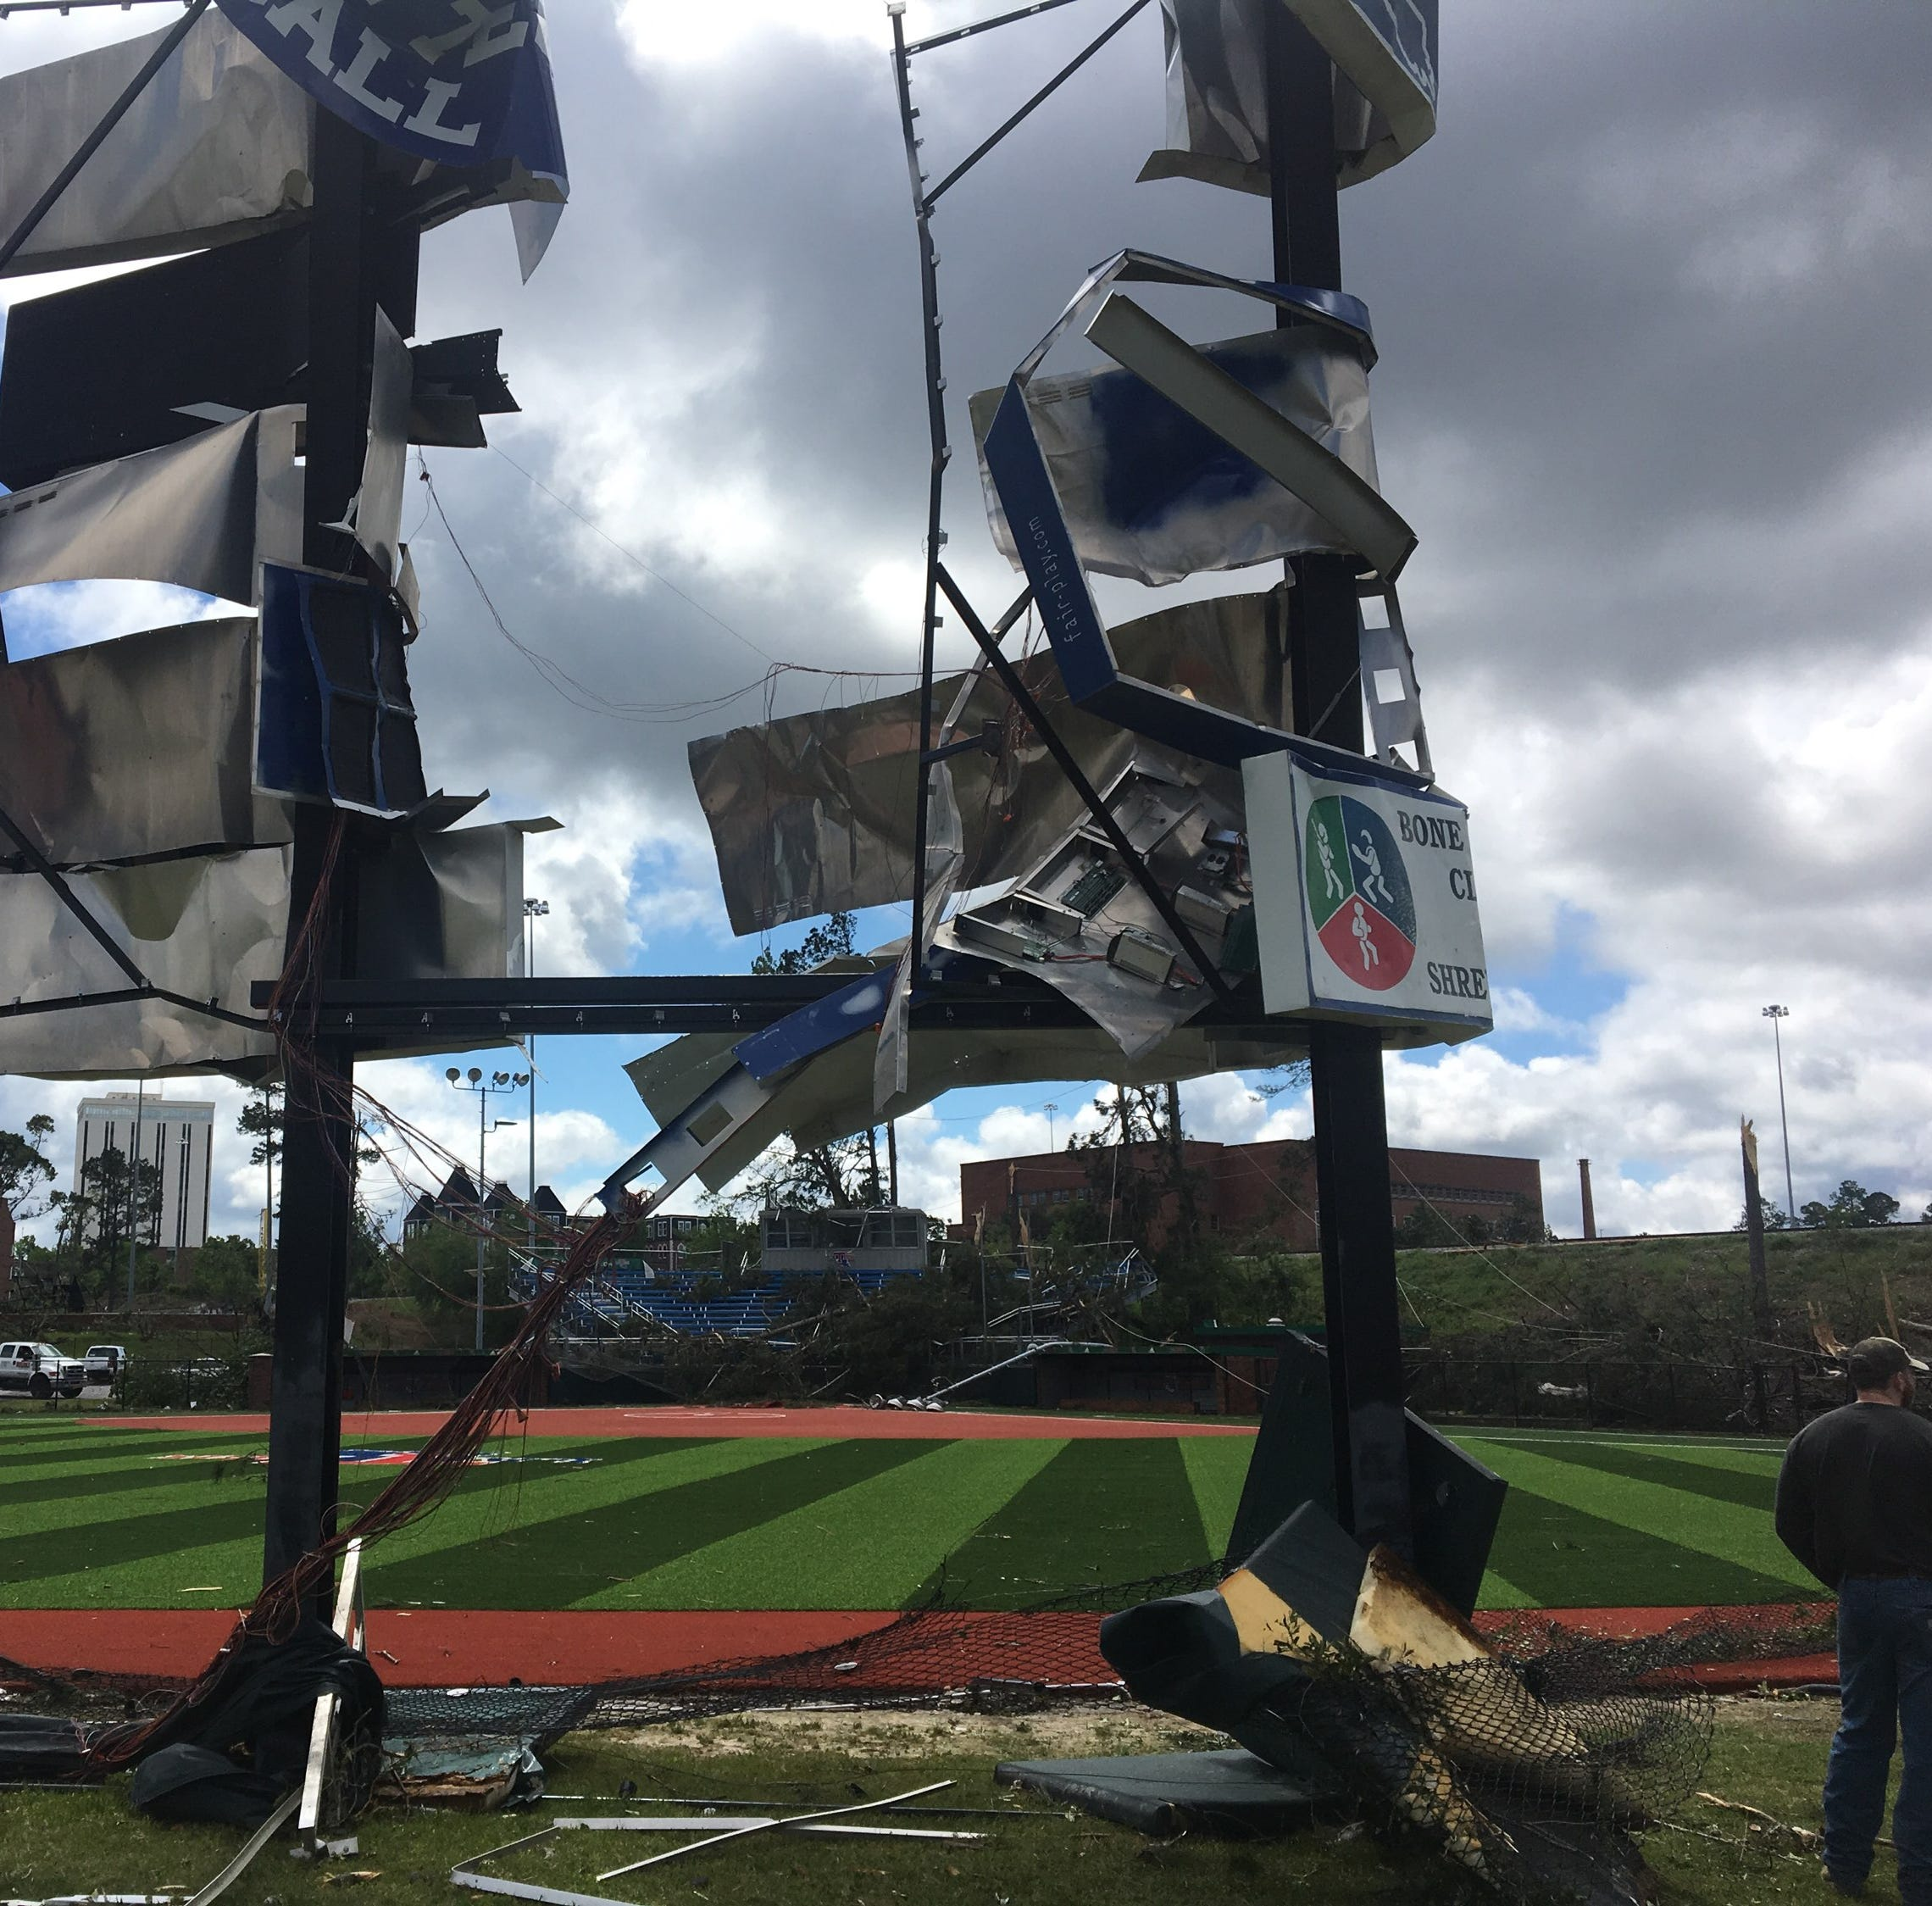 LA Tech sports facilities 'total rebuild' after 'devastating' early morning tornado